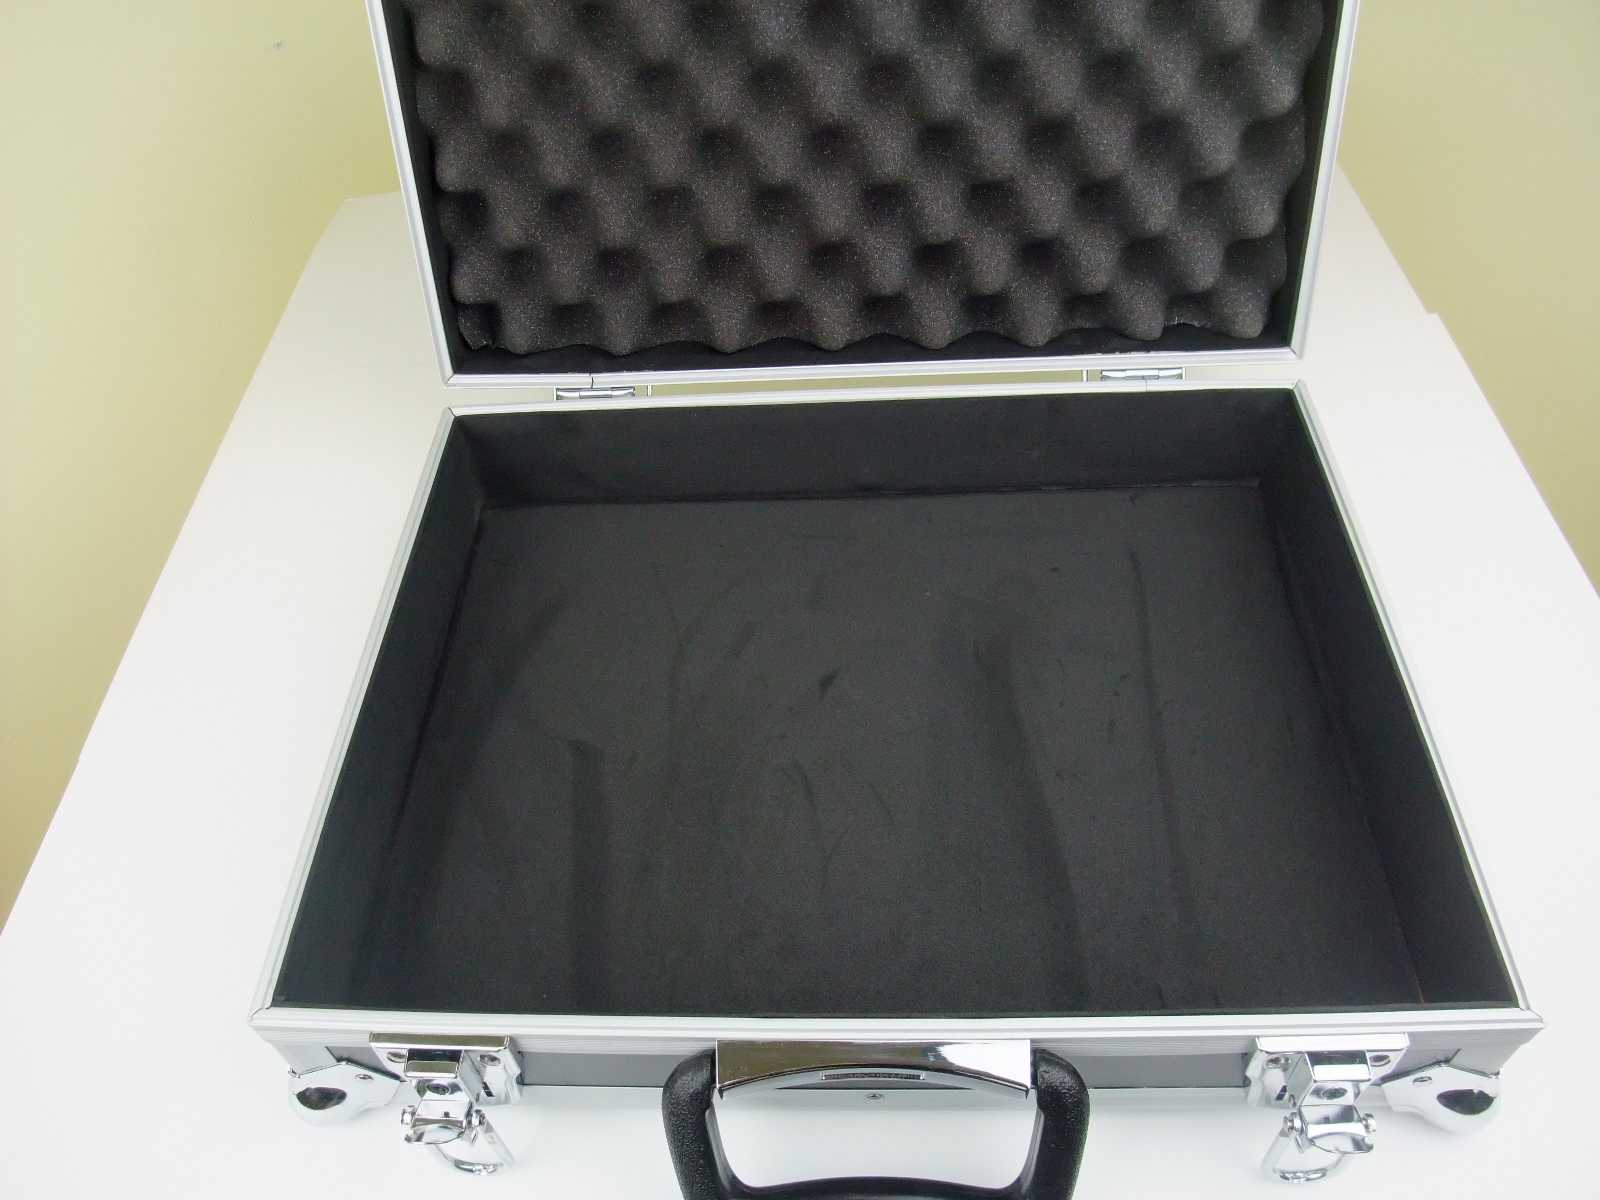 Cameras & Photo Ct-105 Dj Zubehör Transport Koffer 48 X 41 X 14 Cm Foam Universal Mikrofon Case